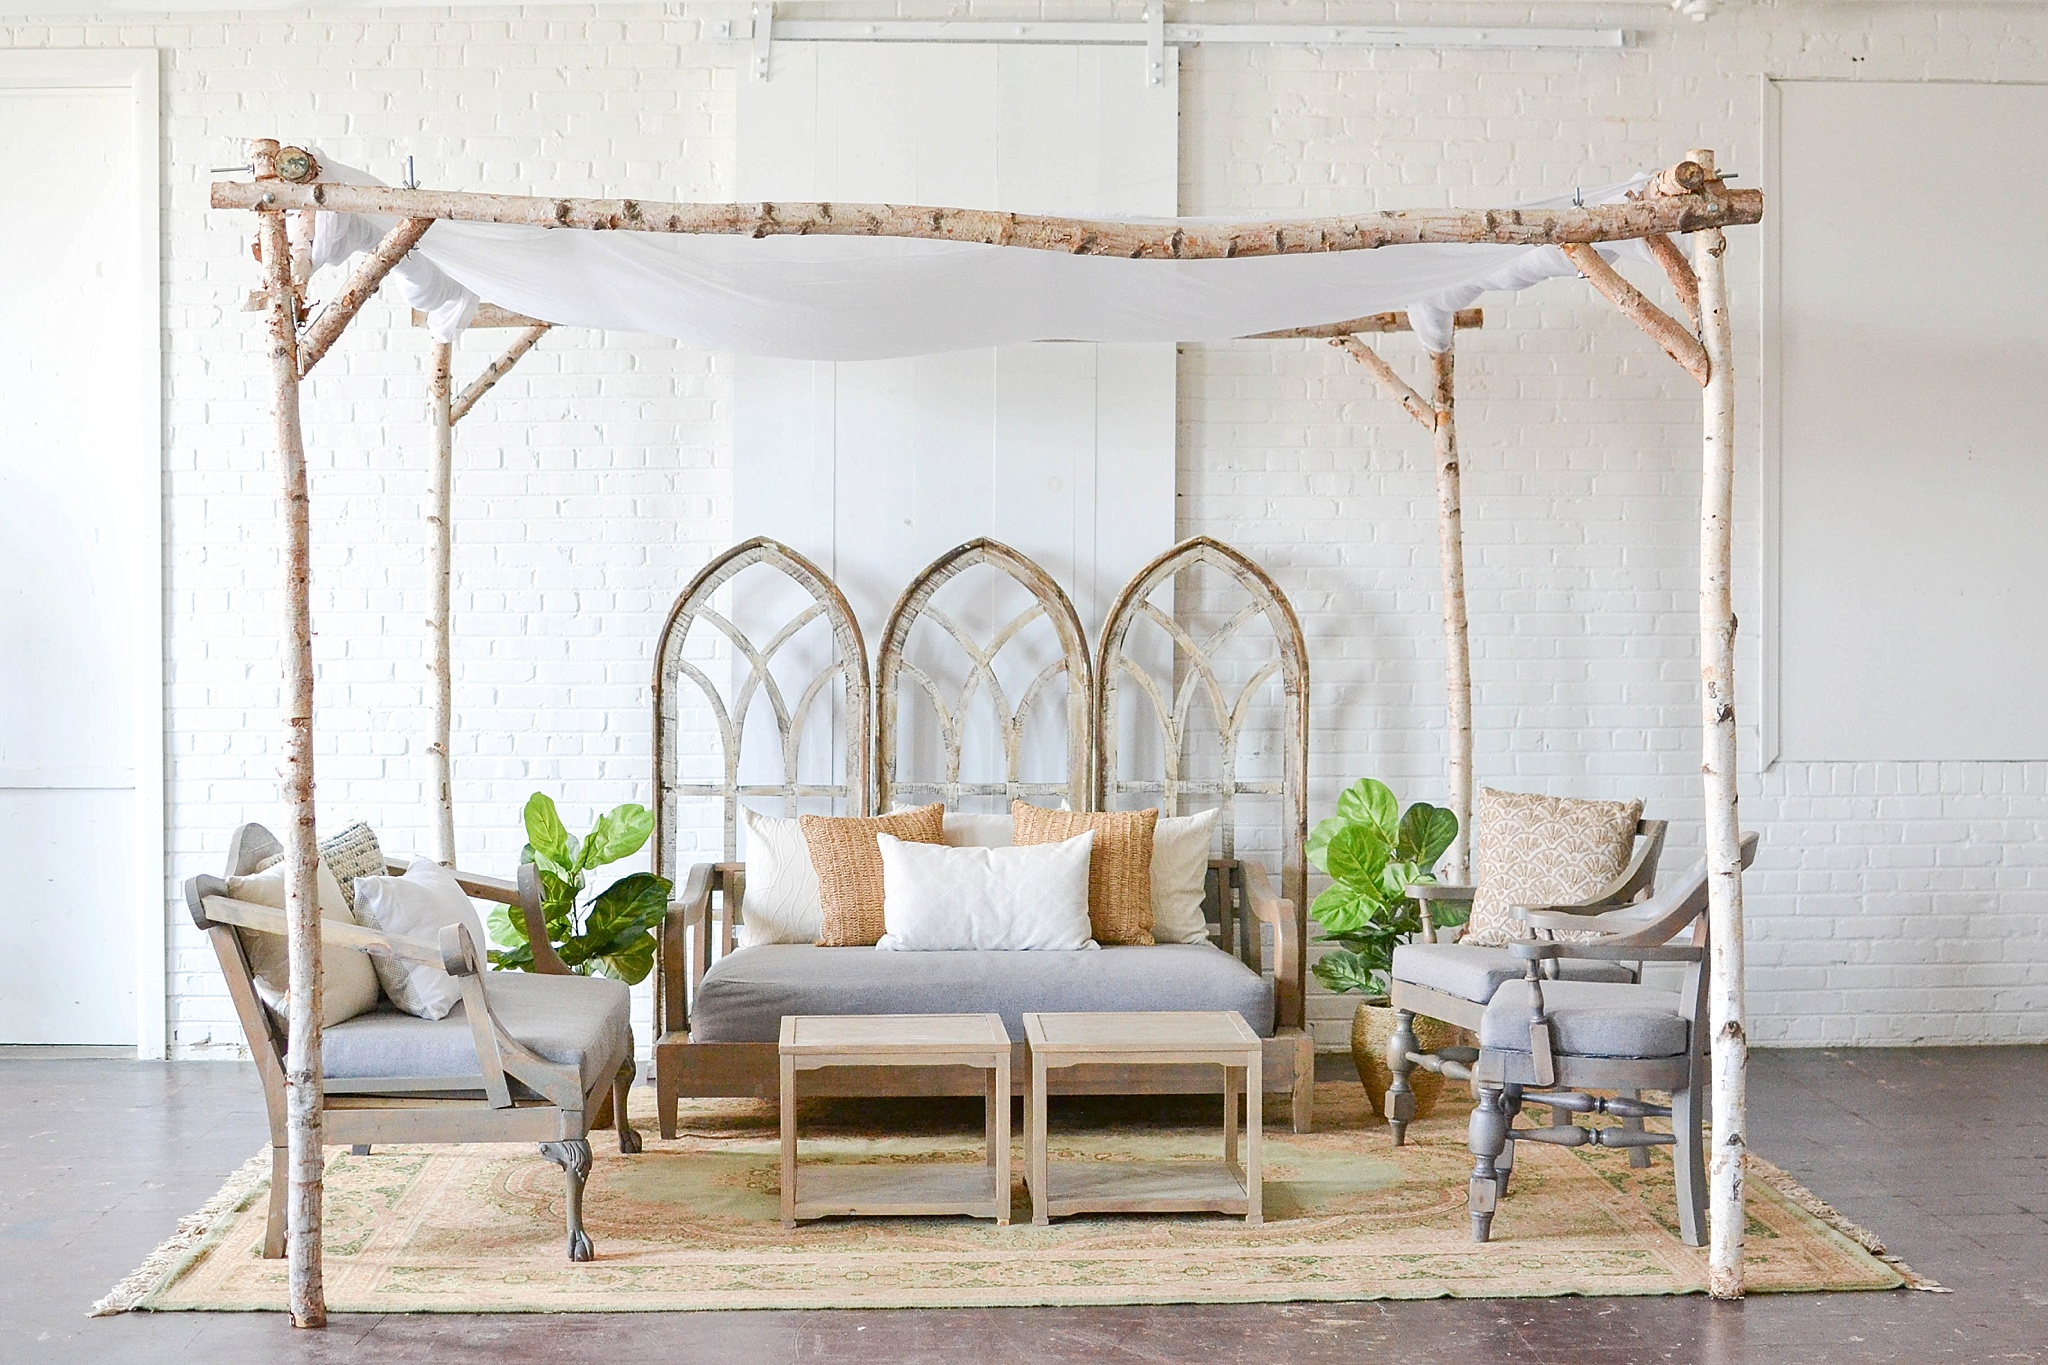 Inspiration station design for a ceremony set-up and a cool cabana with space and inventory provided by Paisley & Jade